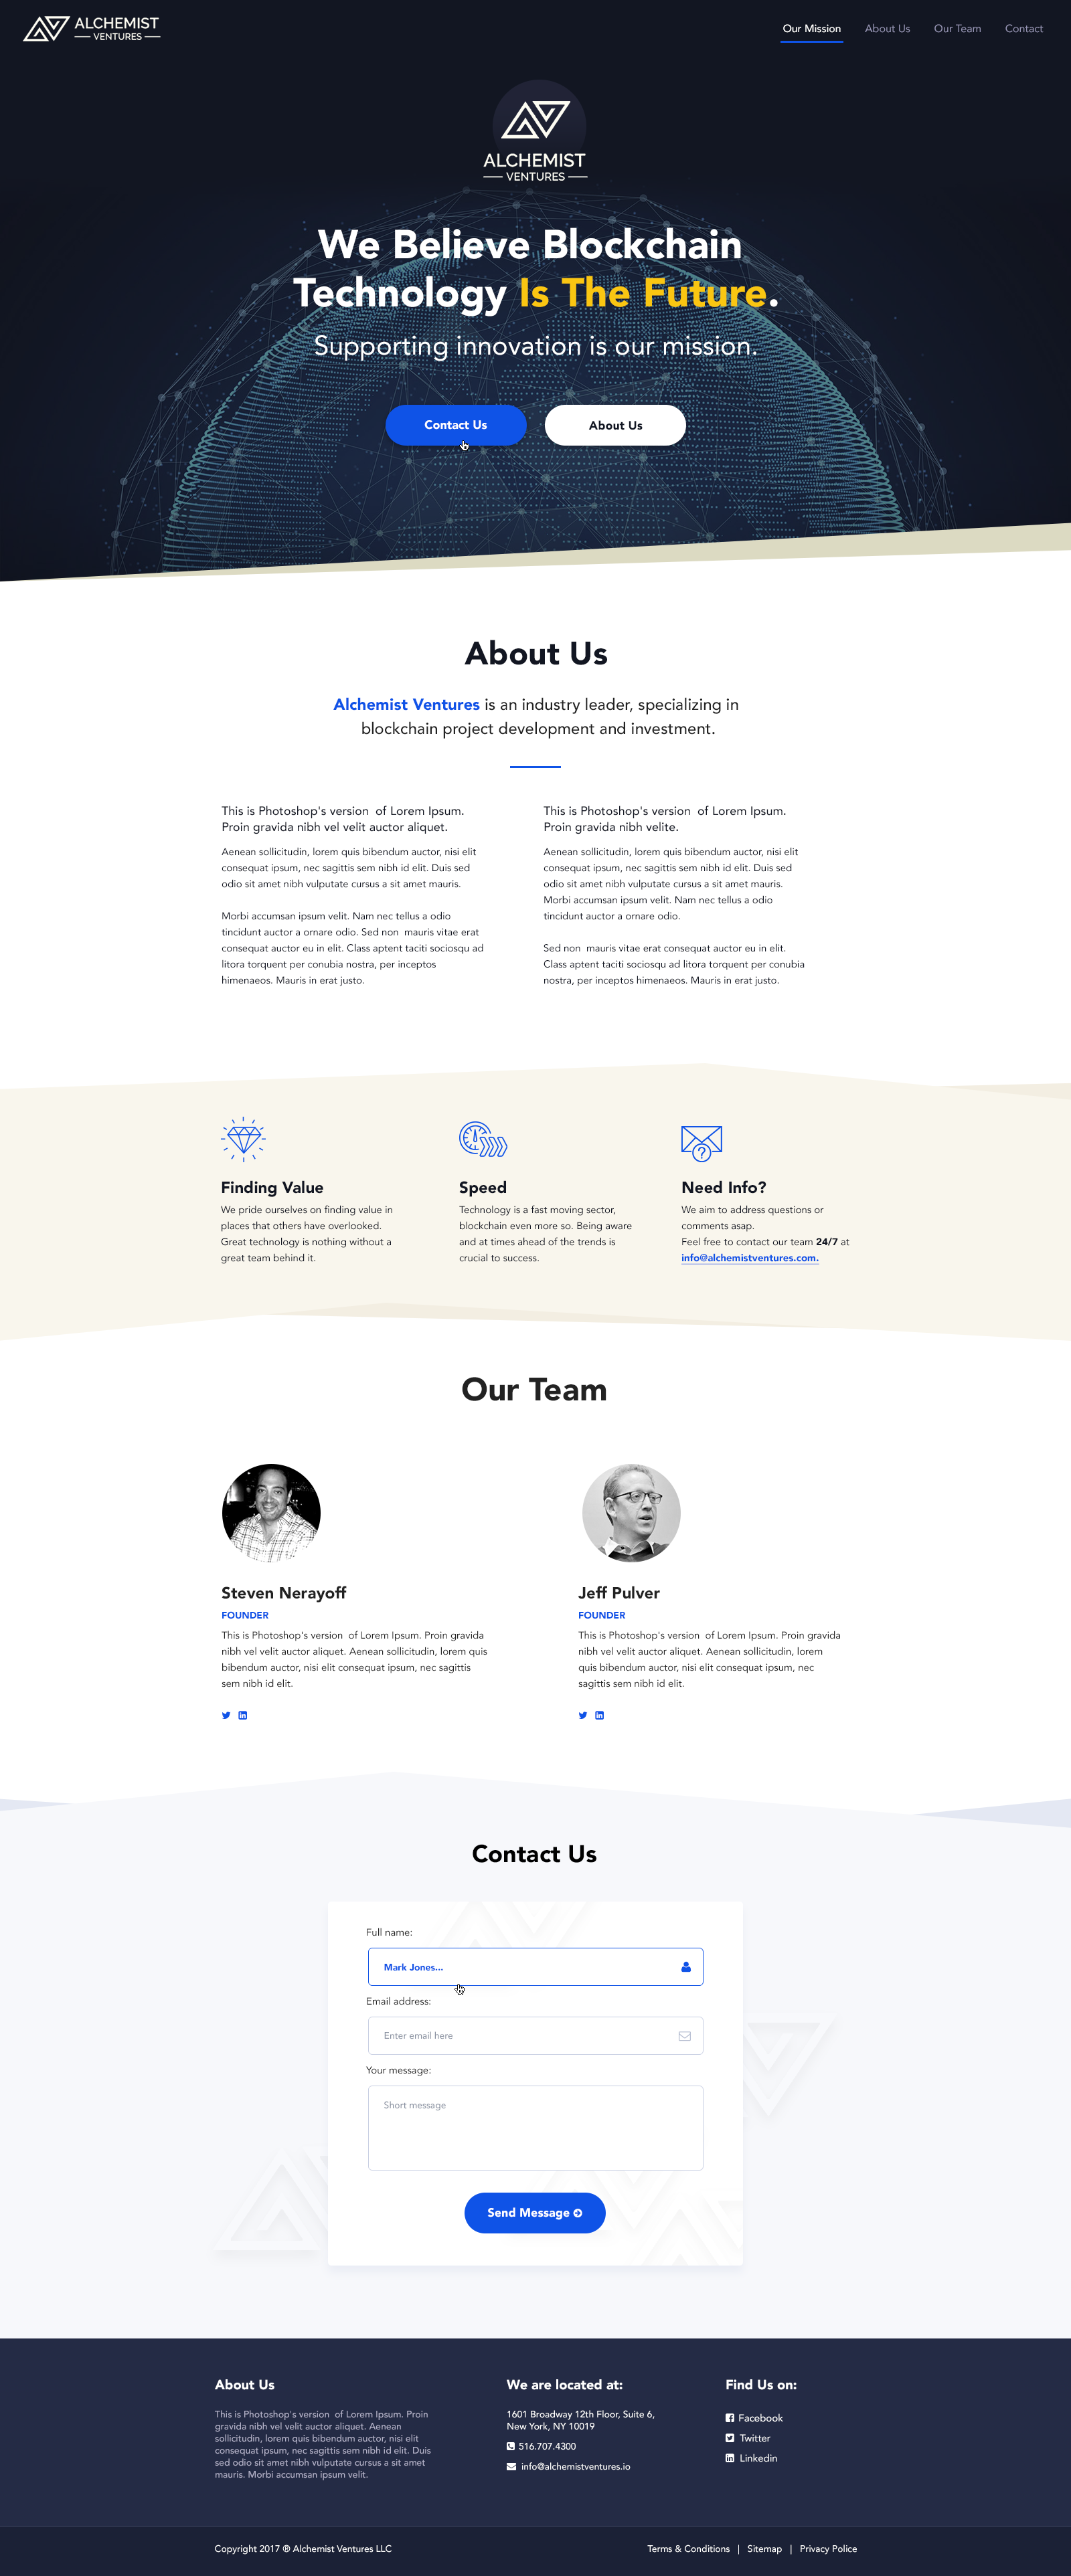 Alchemist Website : Redesign a new website for a technology investment company.!